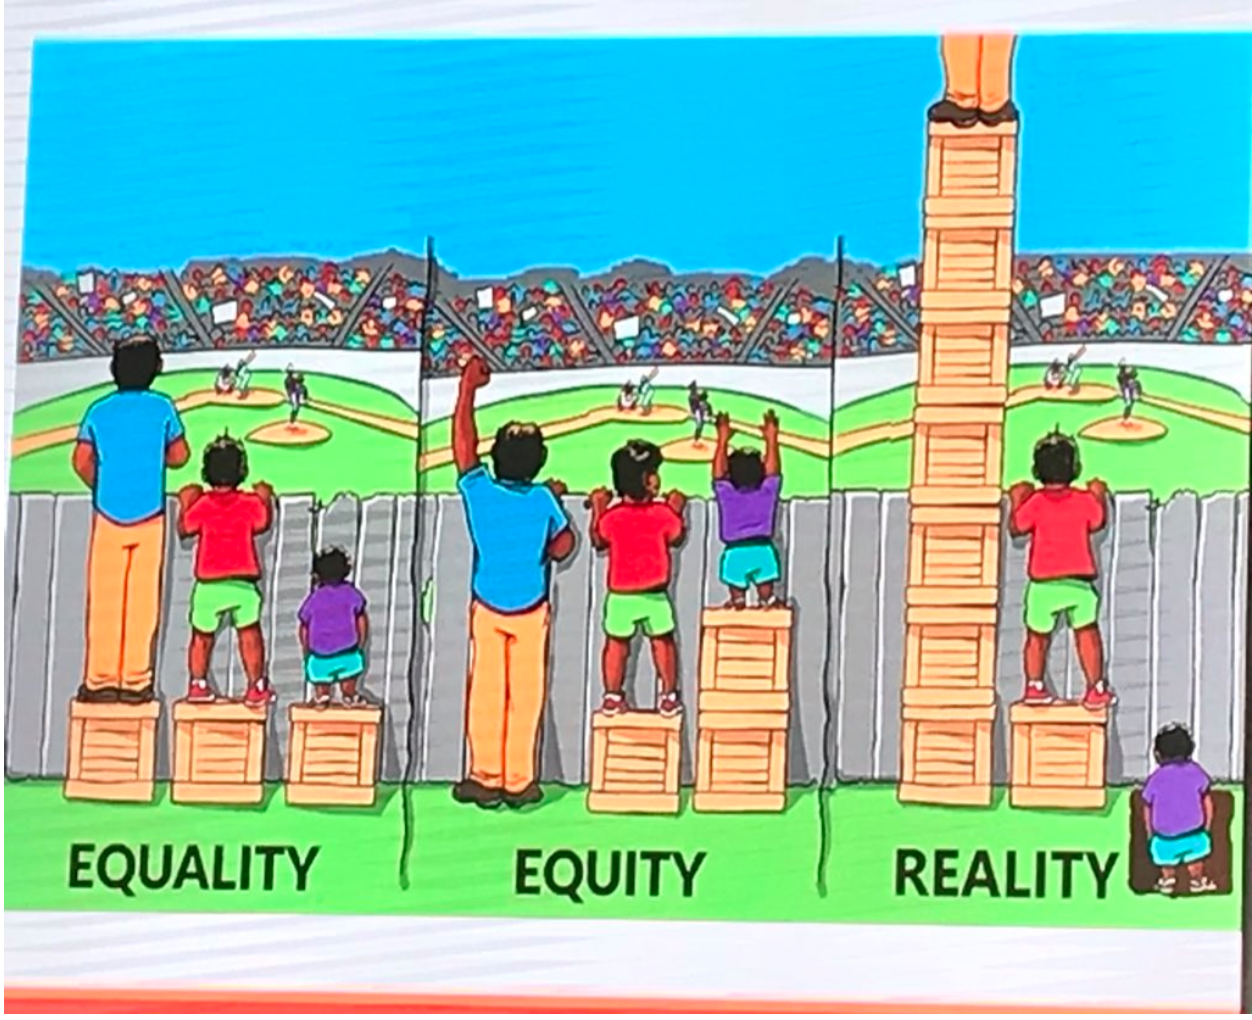 Equality, Equity, Reality